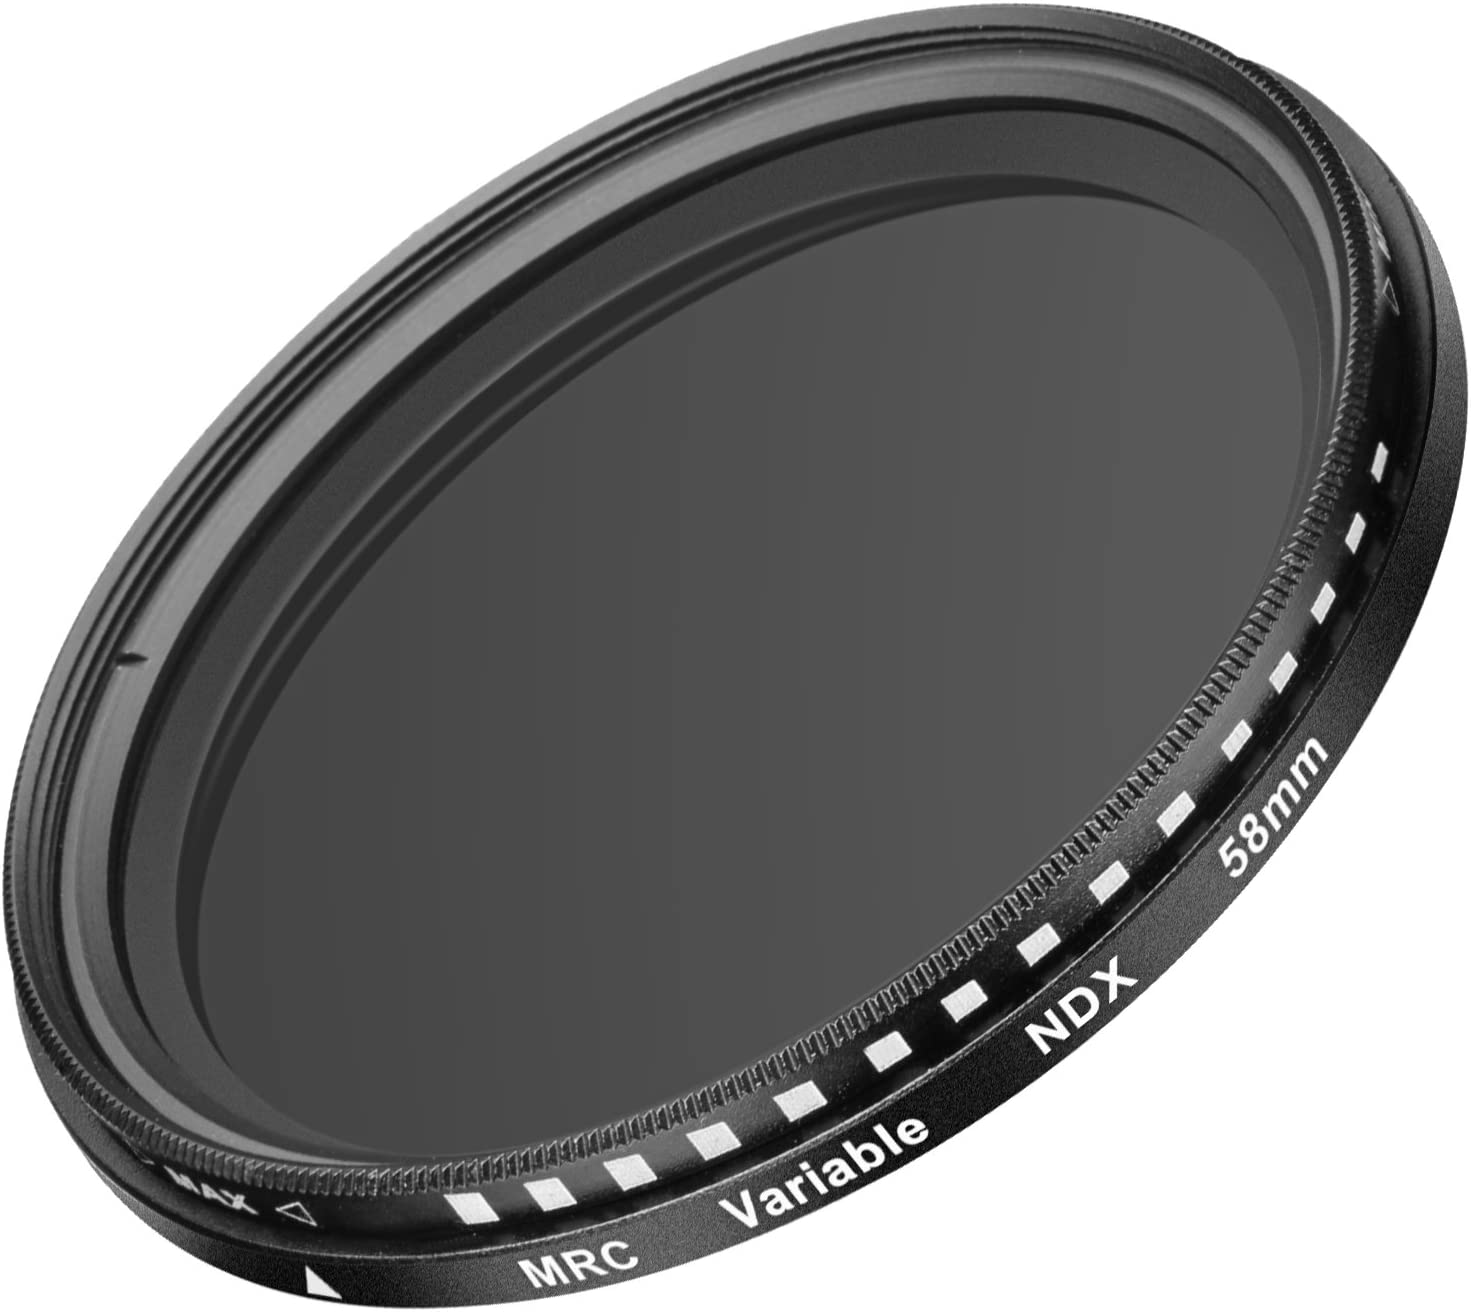 Made of Optical Glass and Aluminum Alloy Frame Neewer 58MM Ultra Slim ND2-ND400 Fader Neutral Density Adjustable Lens Filter for Camera Lens with 58MM Filter Thread Size